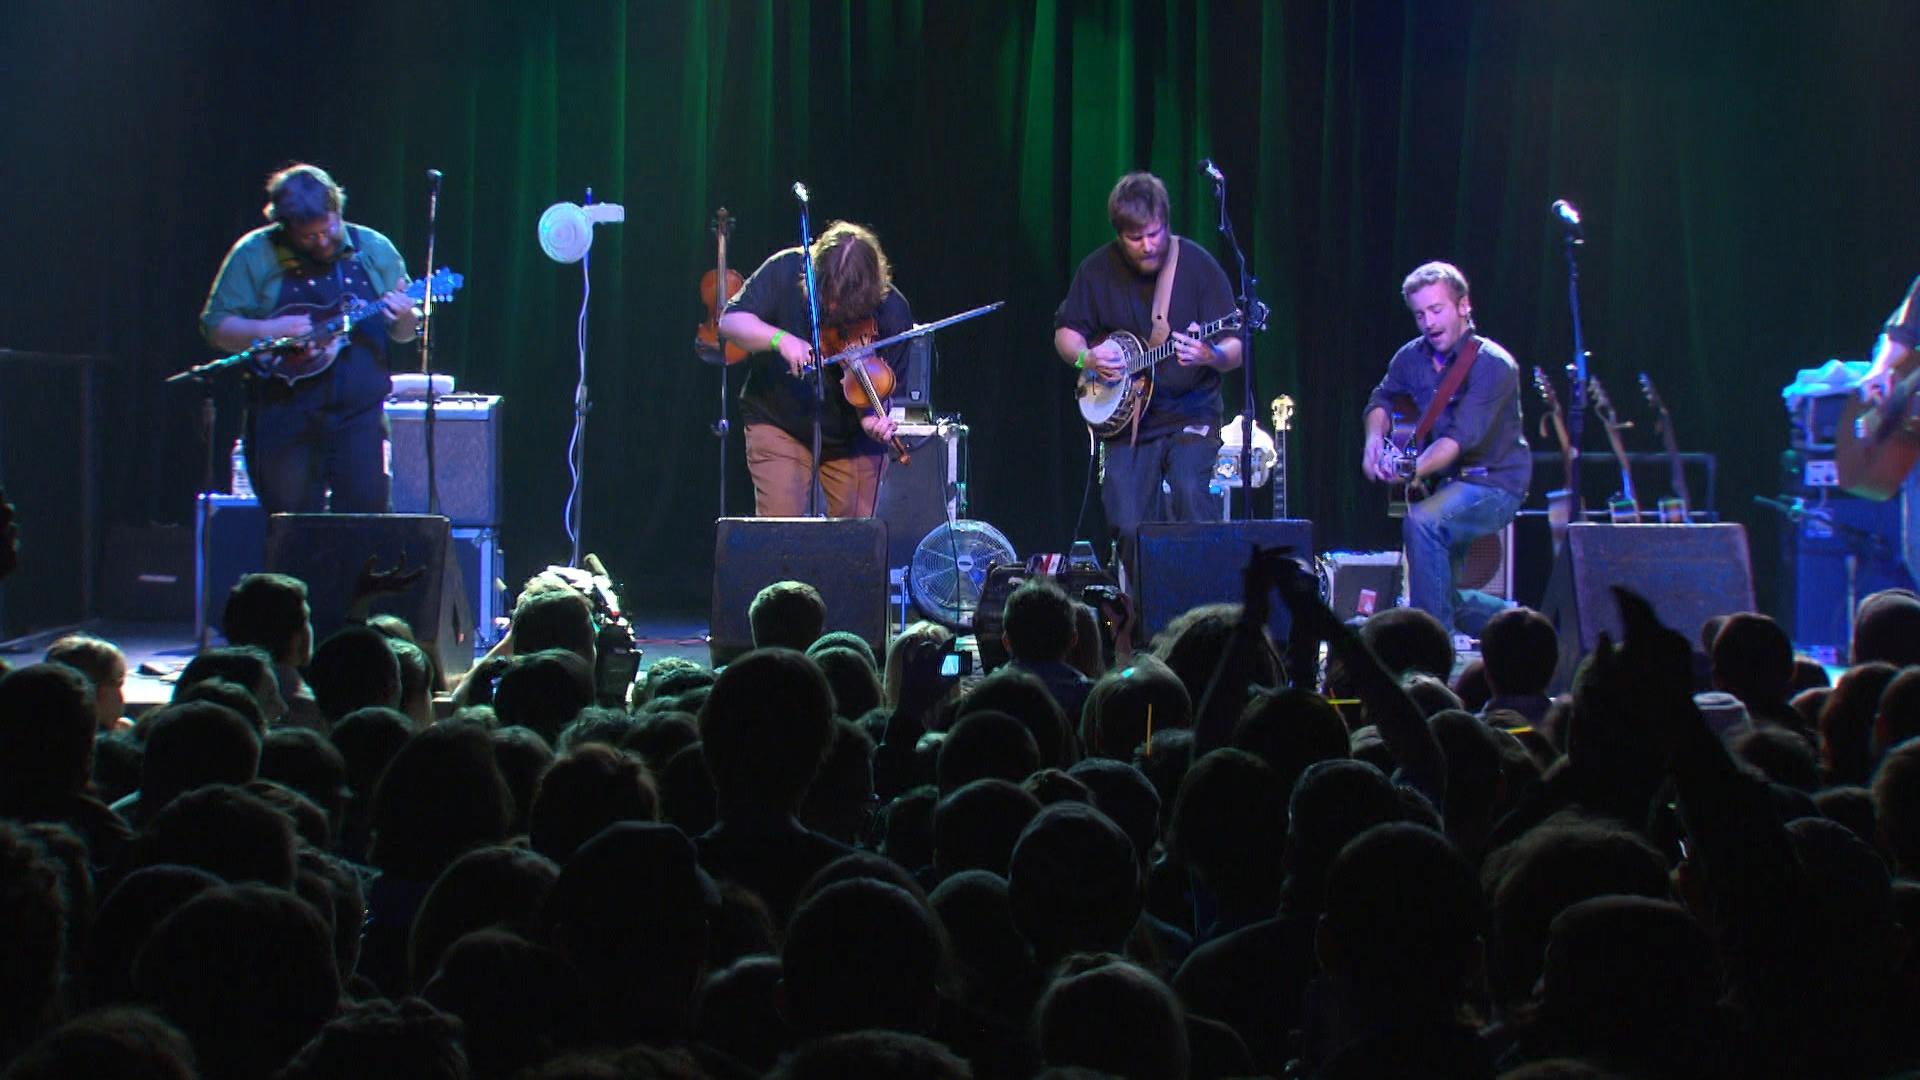 Trampled by Turtles: It's A War